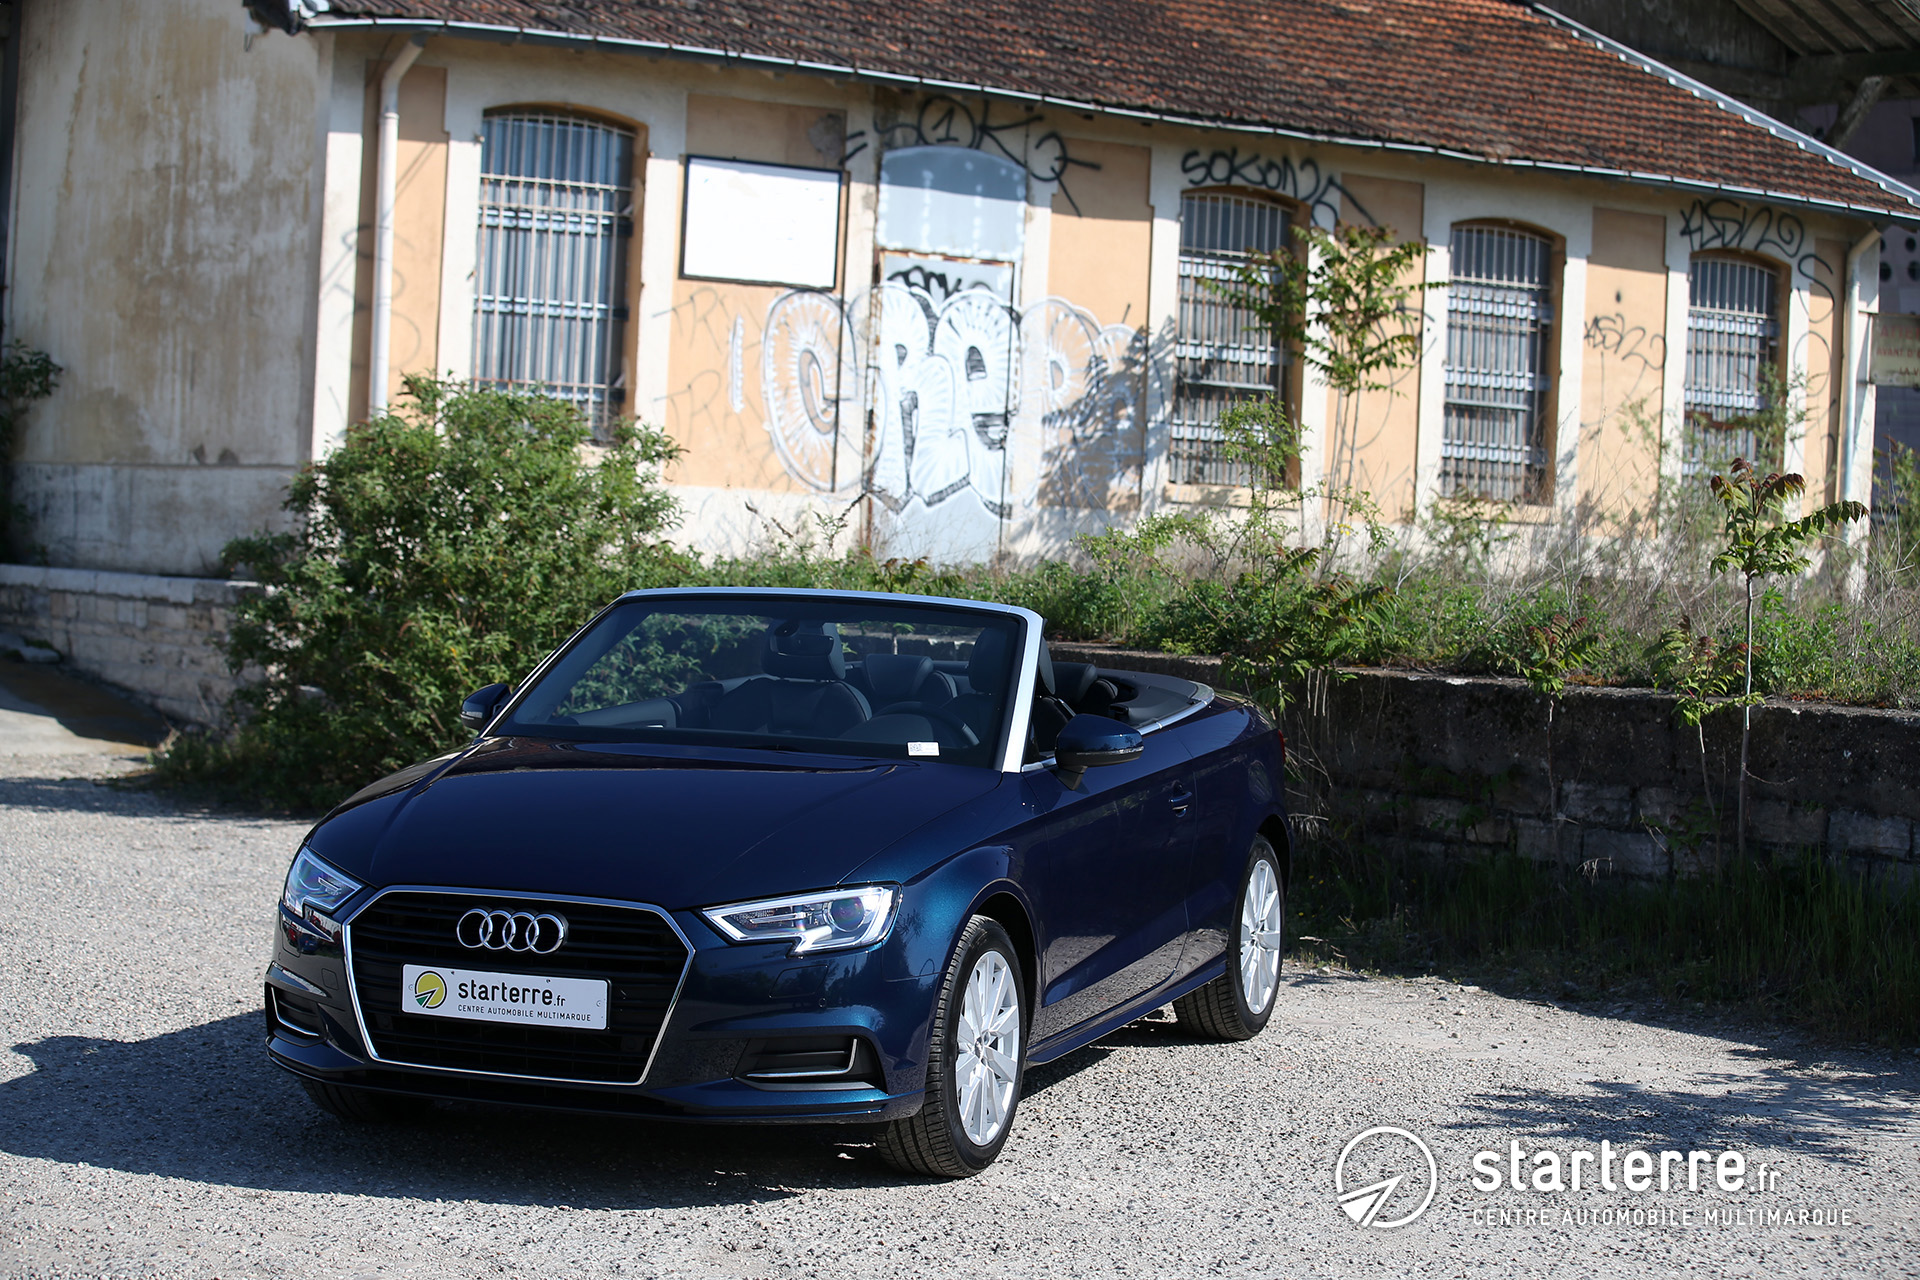 audi a3 cabriolet s duisant et libertaire pr sentation v hicule. Black Bedroom Furniture Sets. Home Design Ideas